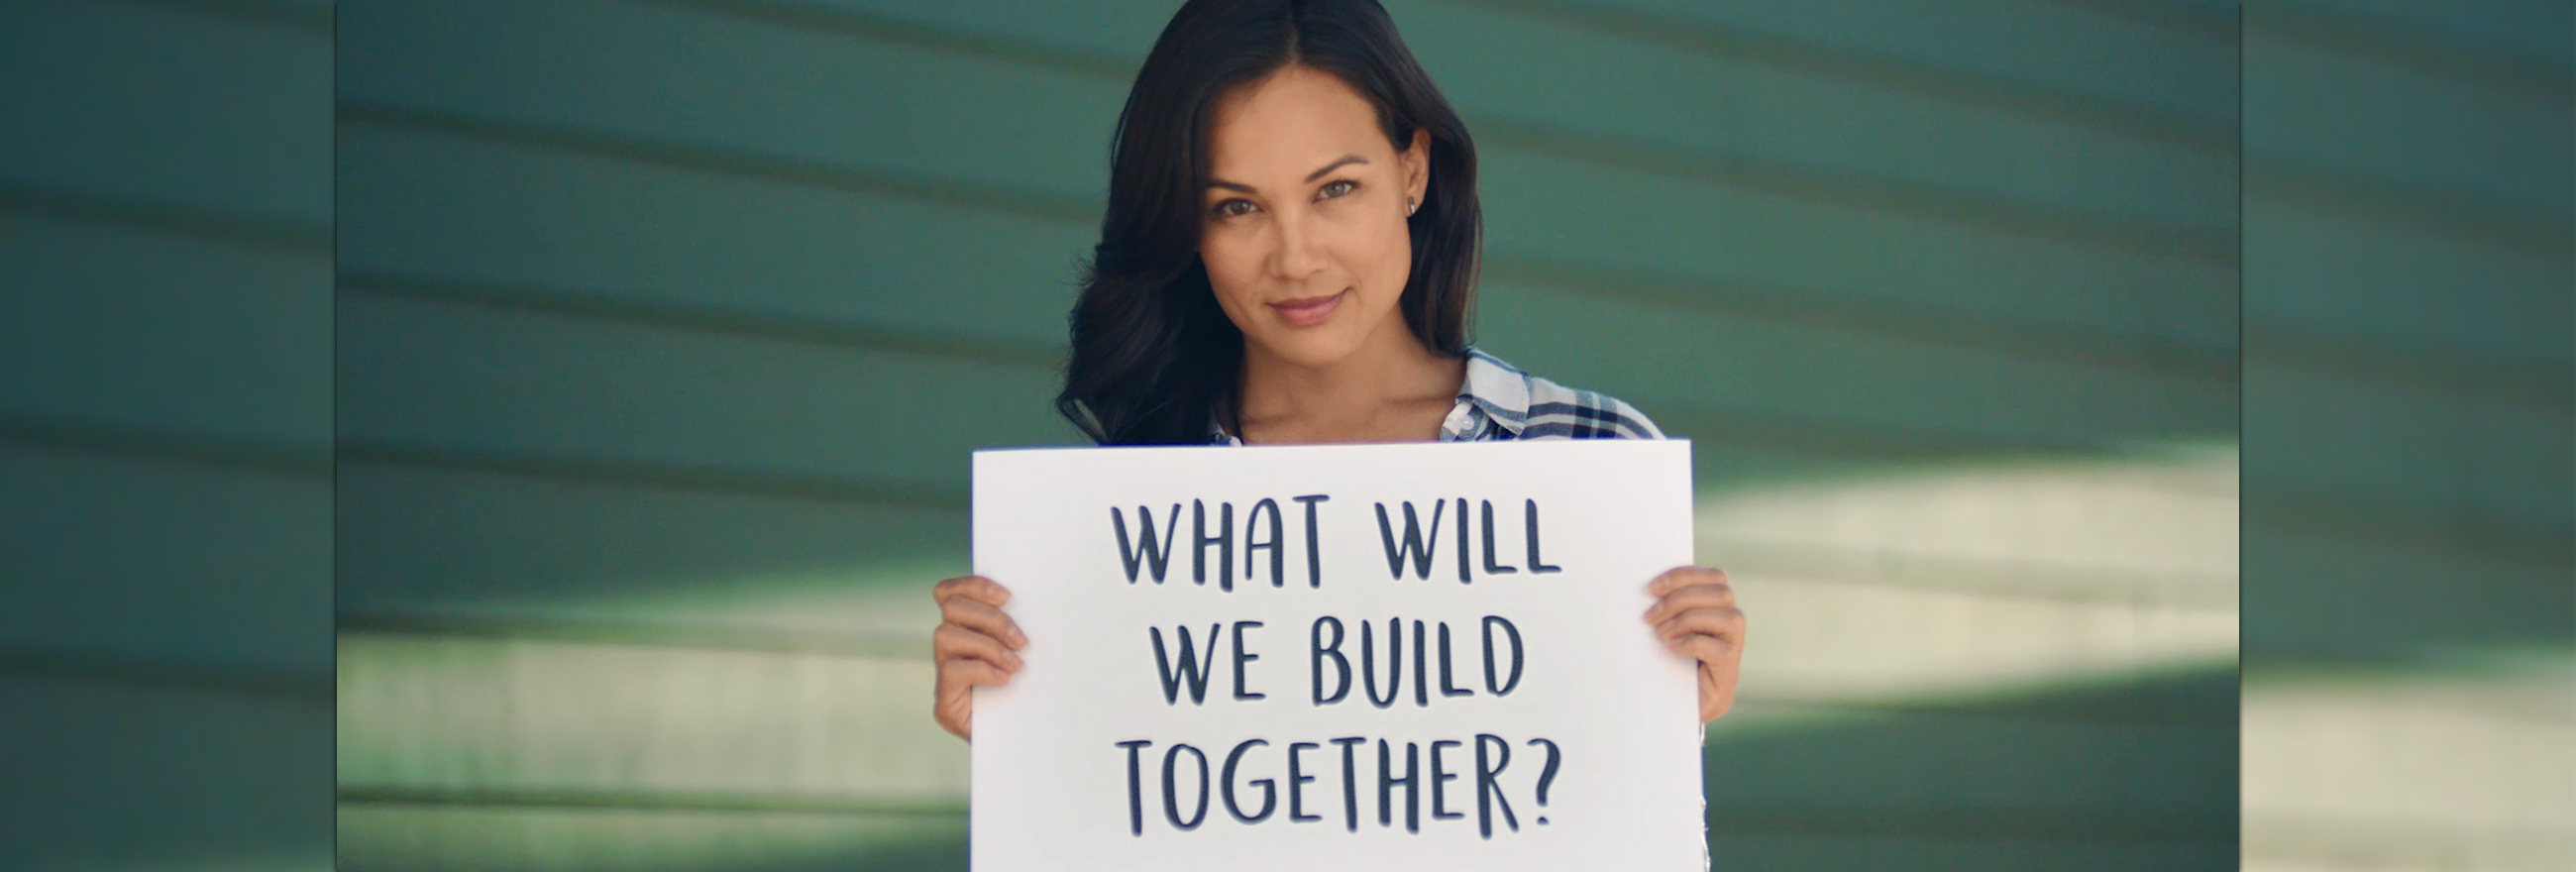 "Video asking women, ""What will you build?"""